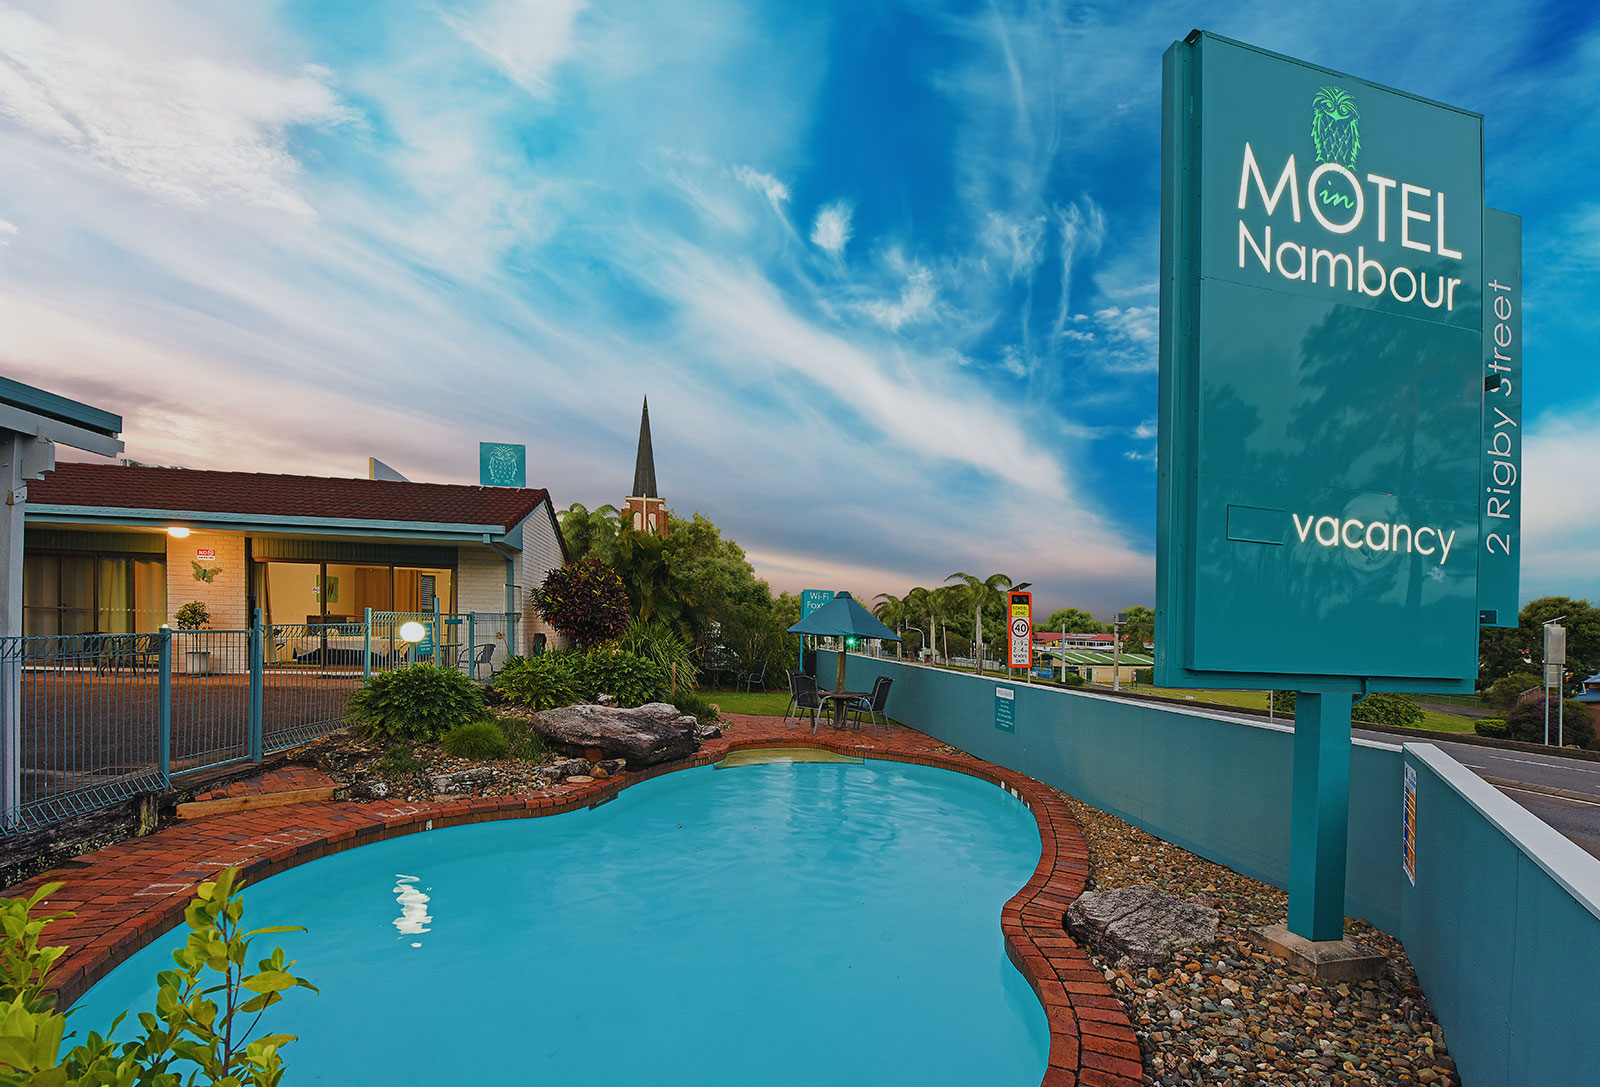 The Award Winning Motel in Nambour